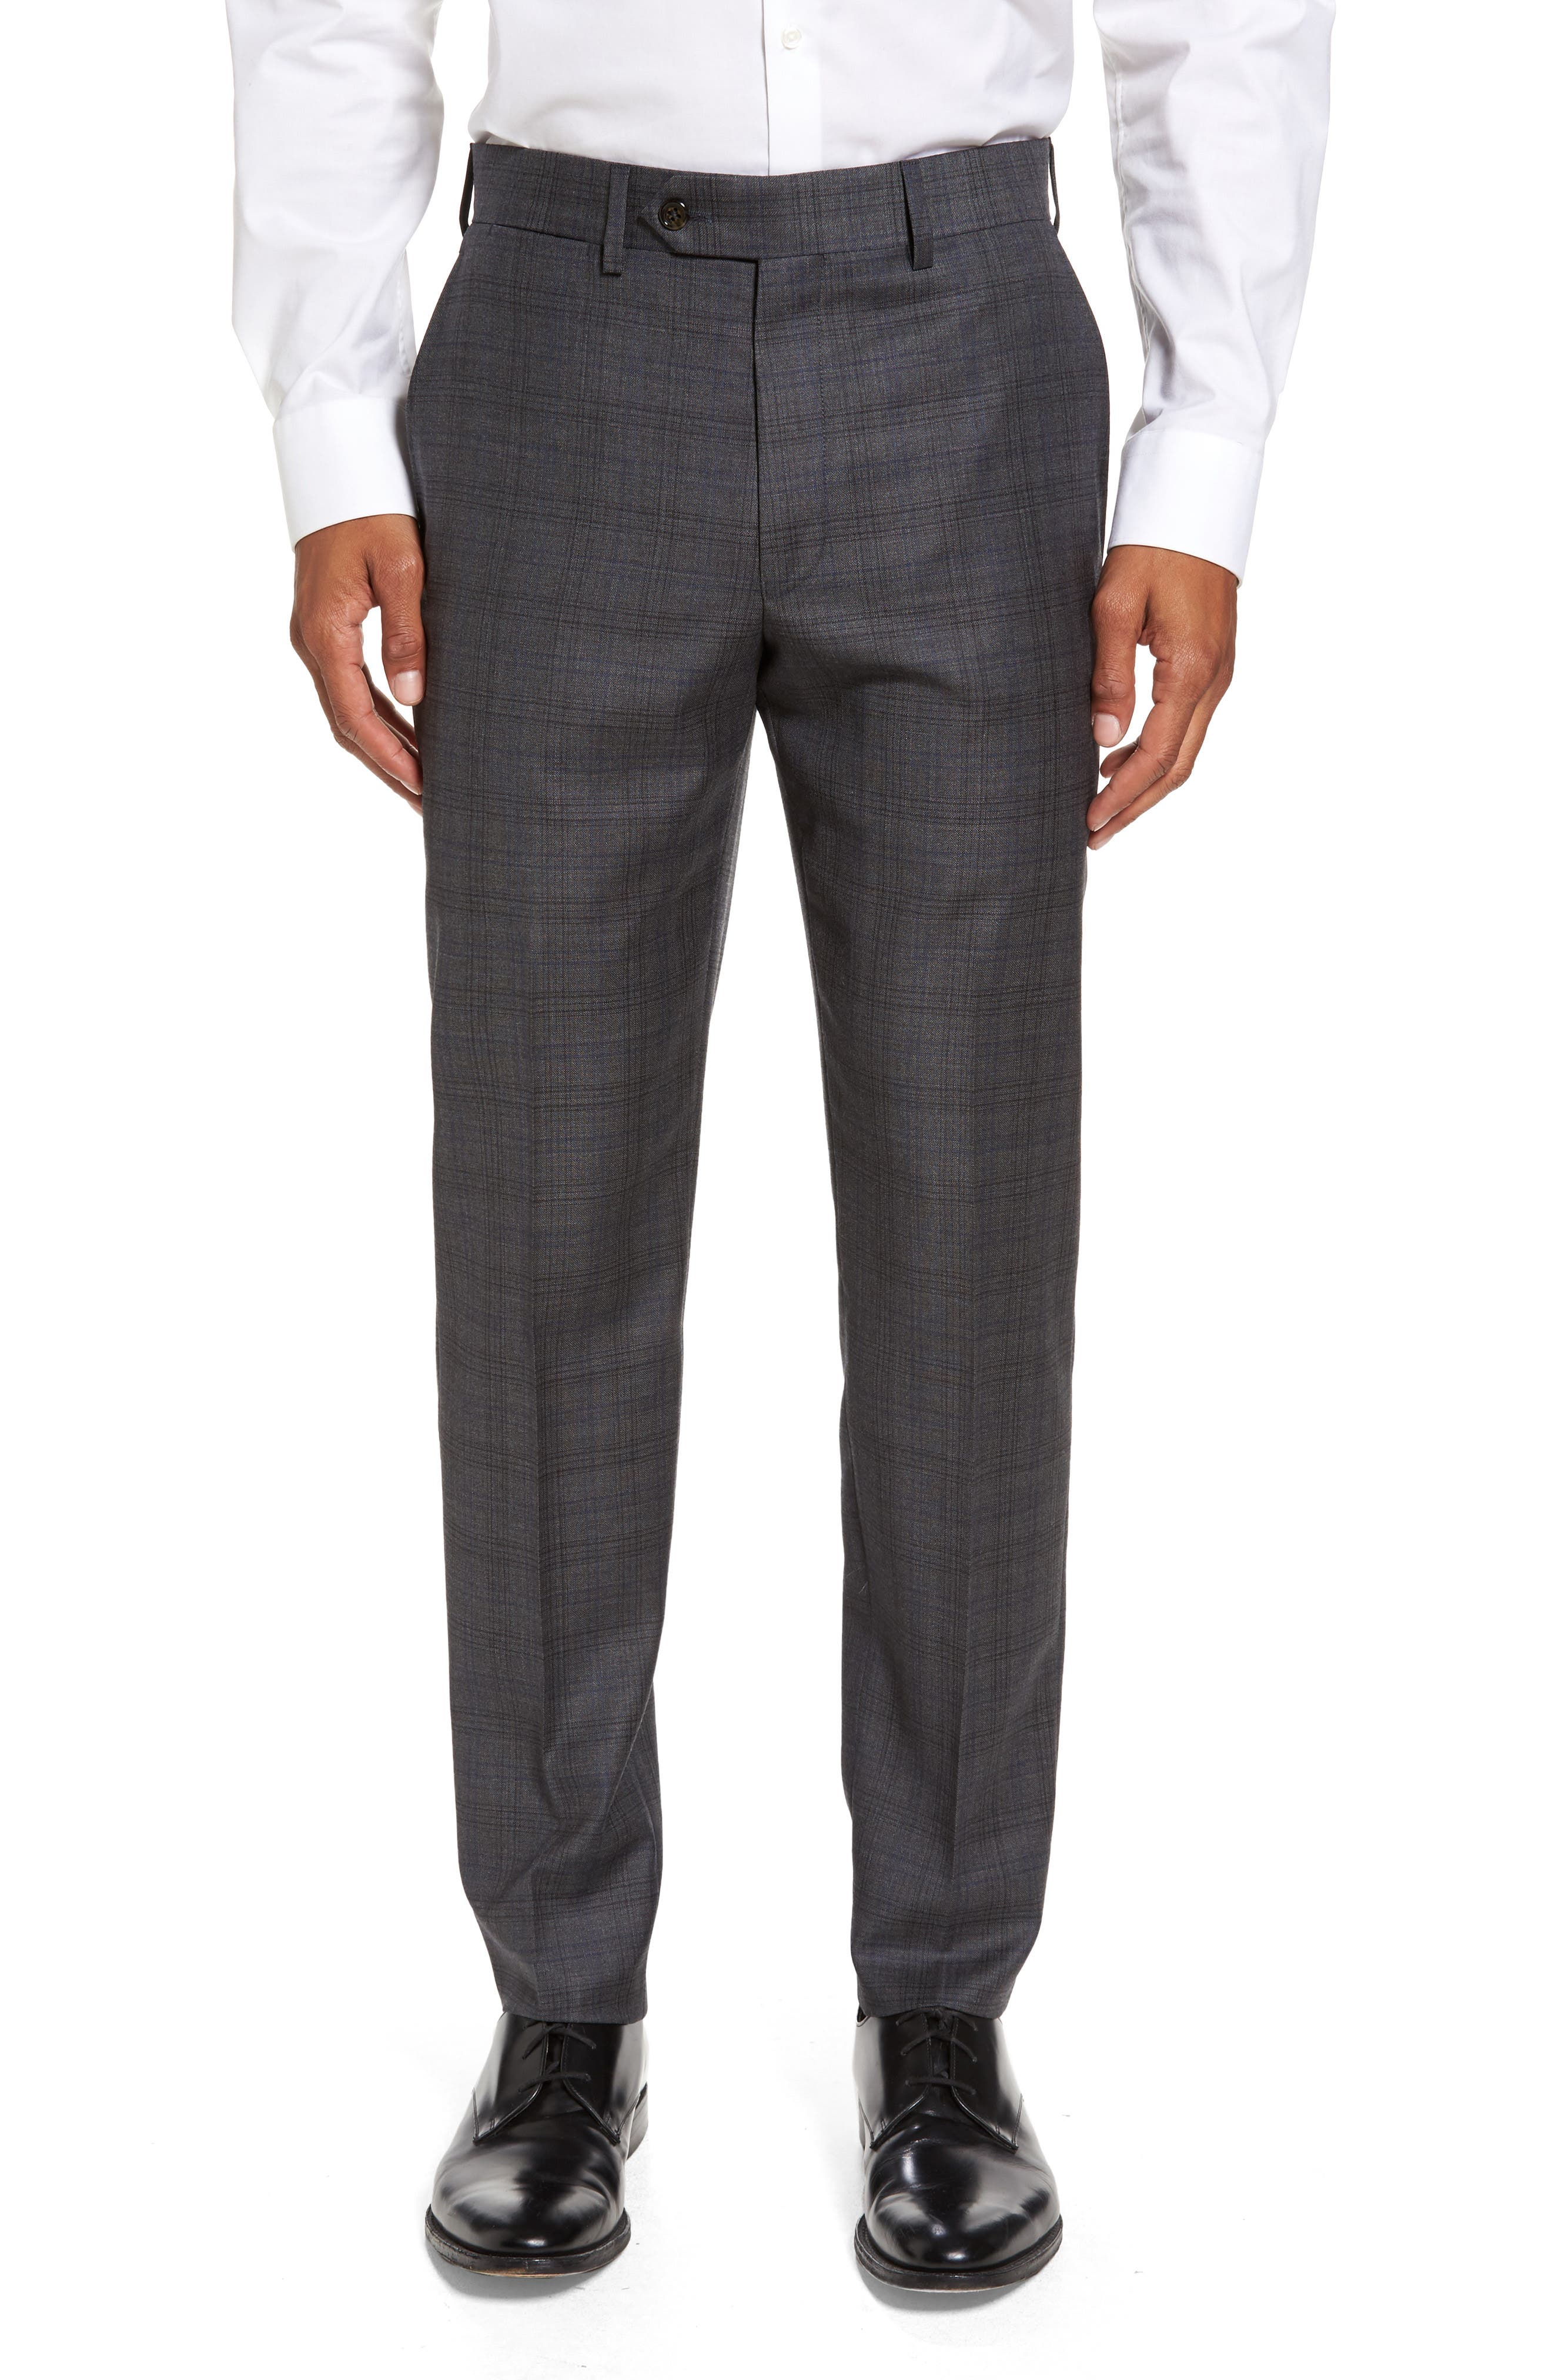 Todd Snyder White Label Sutton Flat Front Plaid Wool Trousers